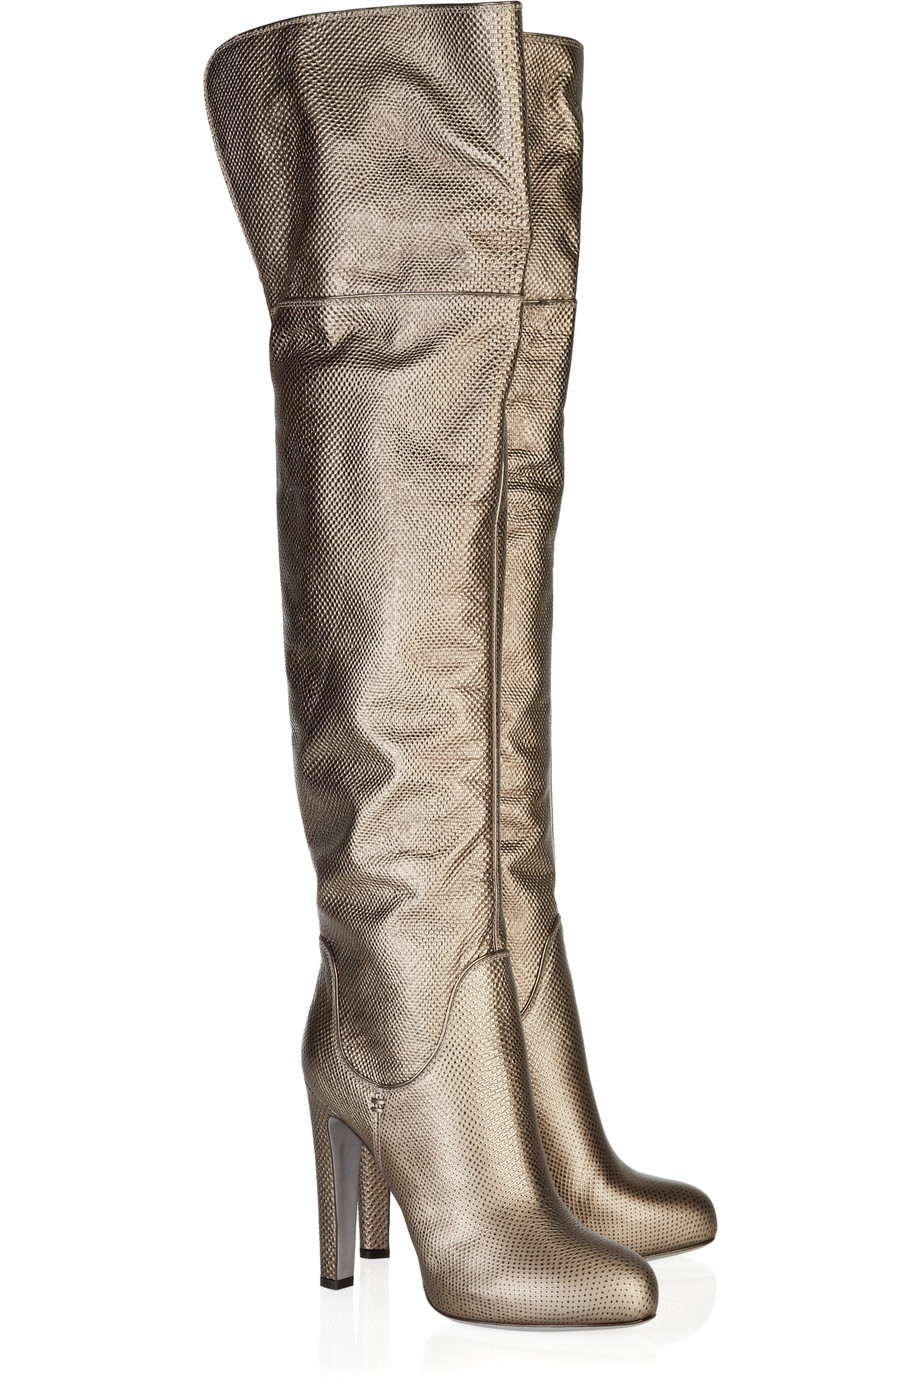 7343f4f4d3b Lyst - Sergio Rossi Metallic Leather Over-the-knee Boots in Metallic